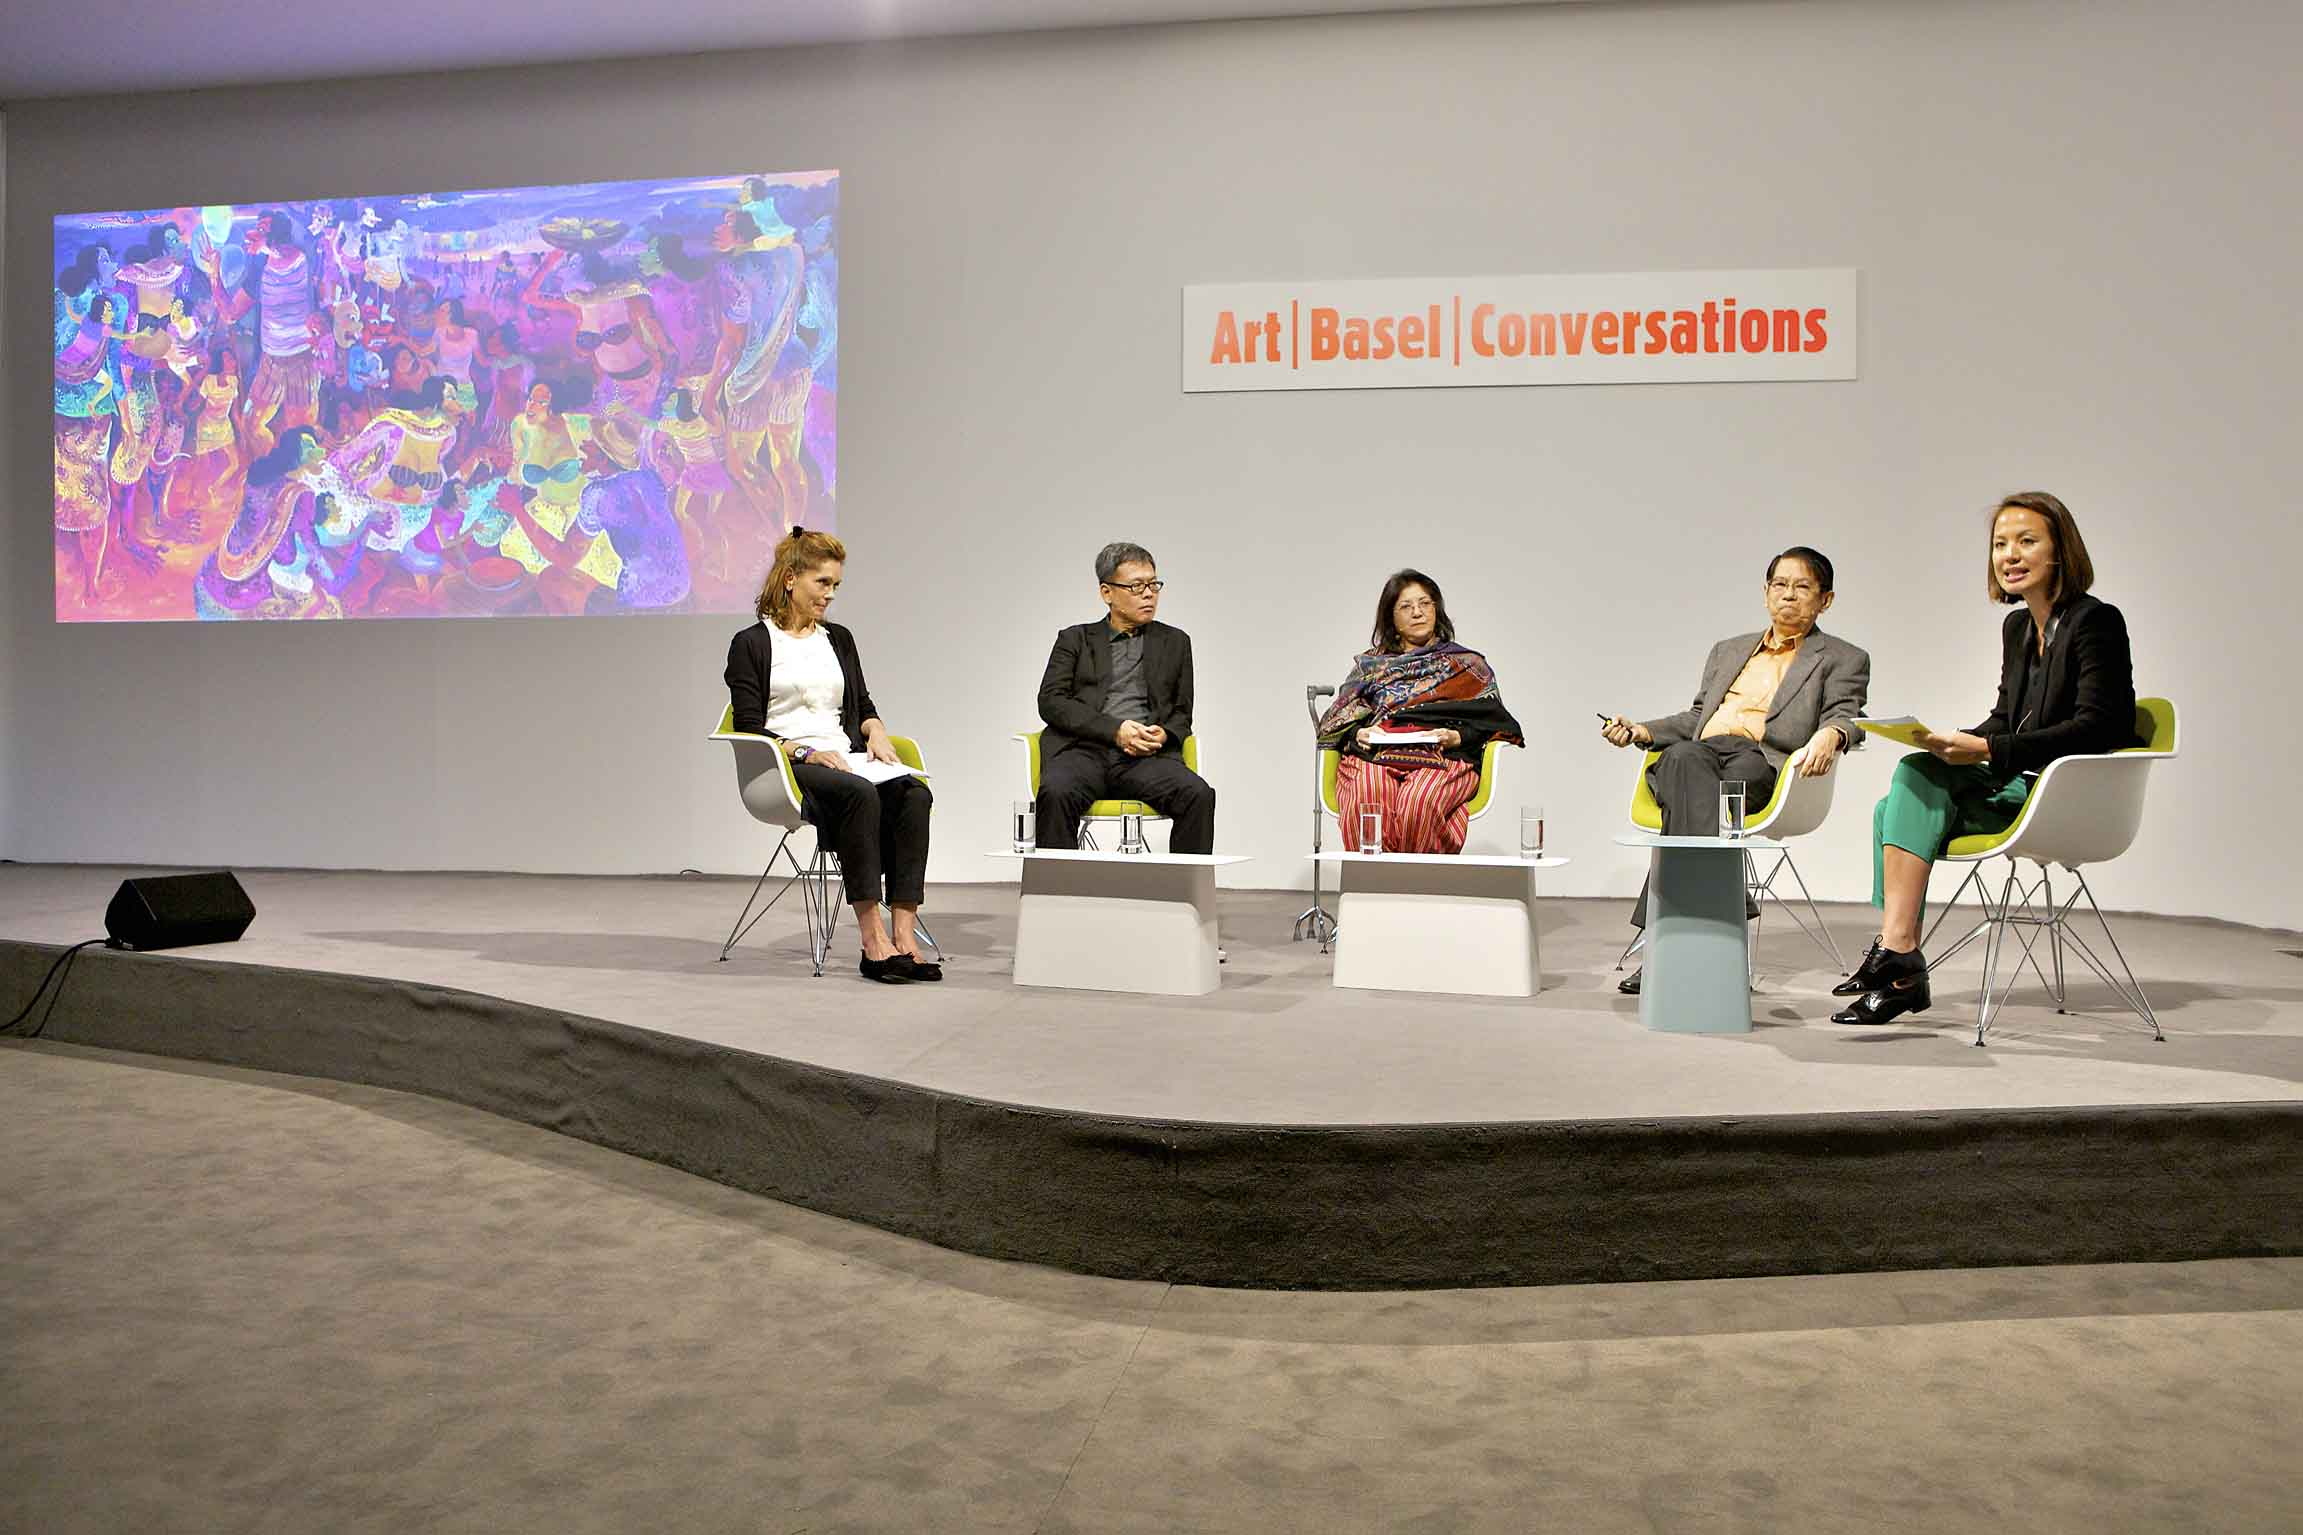 art basel 2017 Design Conferences You Can't Miss at Art Basel 2017 Design Conferences You Cant Miss at Art Basel 2017 2